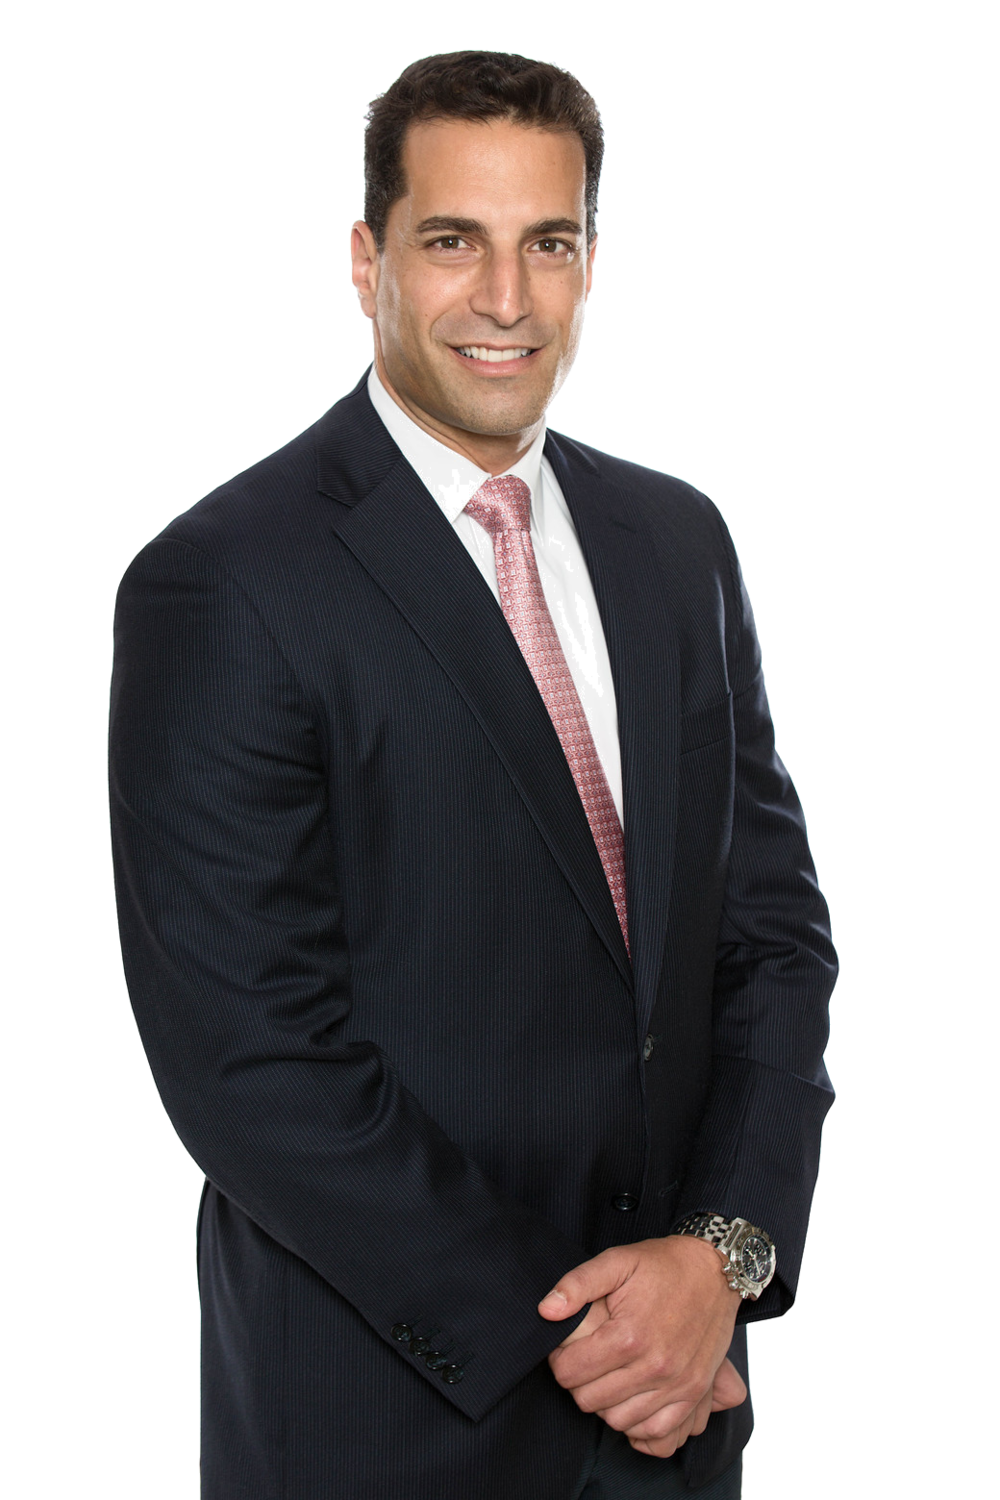 Board Certified Civil Trial Lawyer Sagi Shaked has been practicing law since 2000, and went on to found the successful Shaked Law Firm in 2007, where he became one of the Top 100 Trial Lawyers in the United States as named by the American Trial Lawyers Association. -